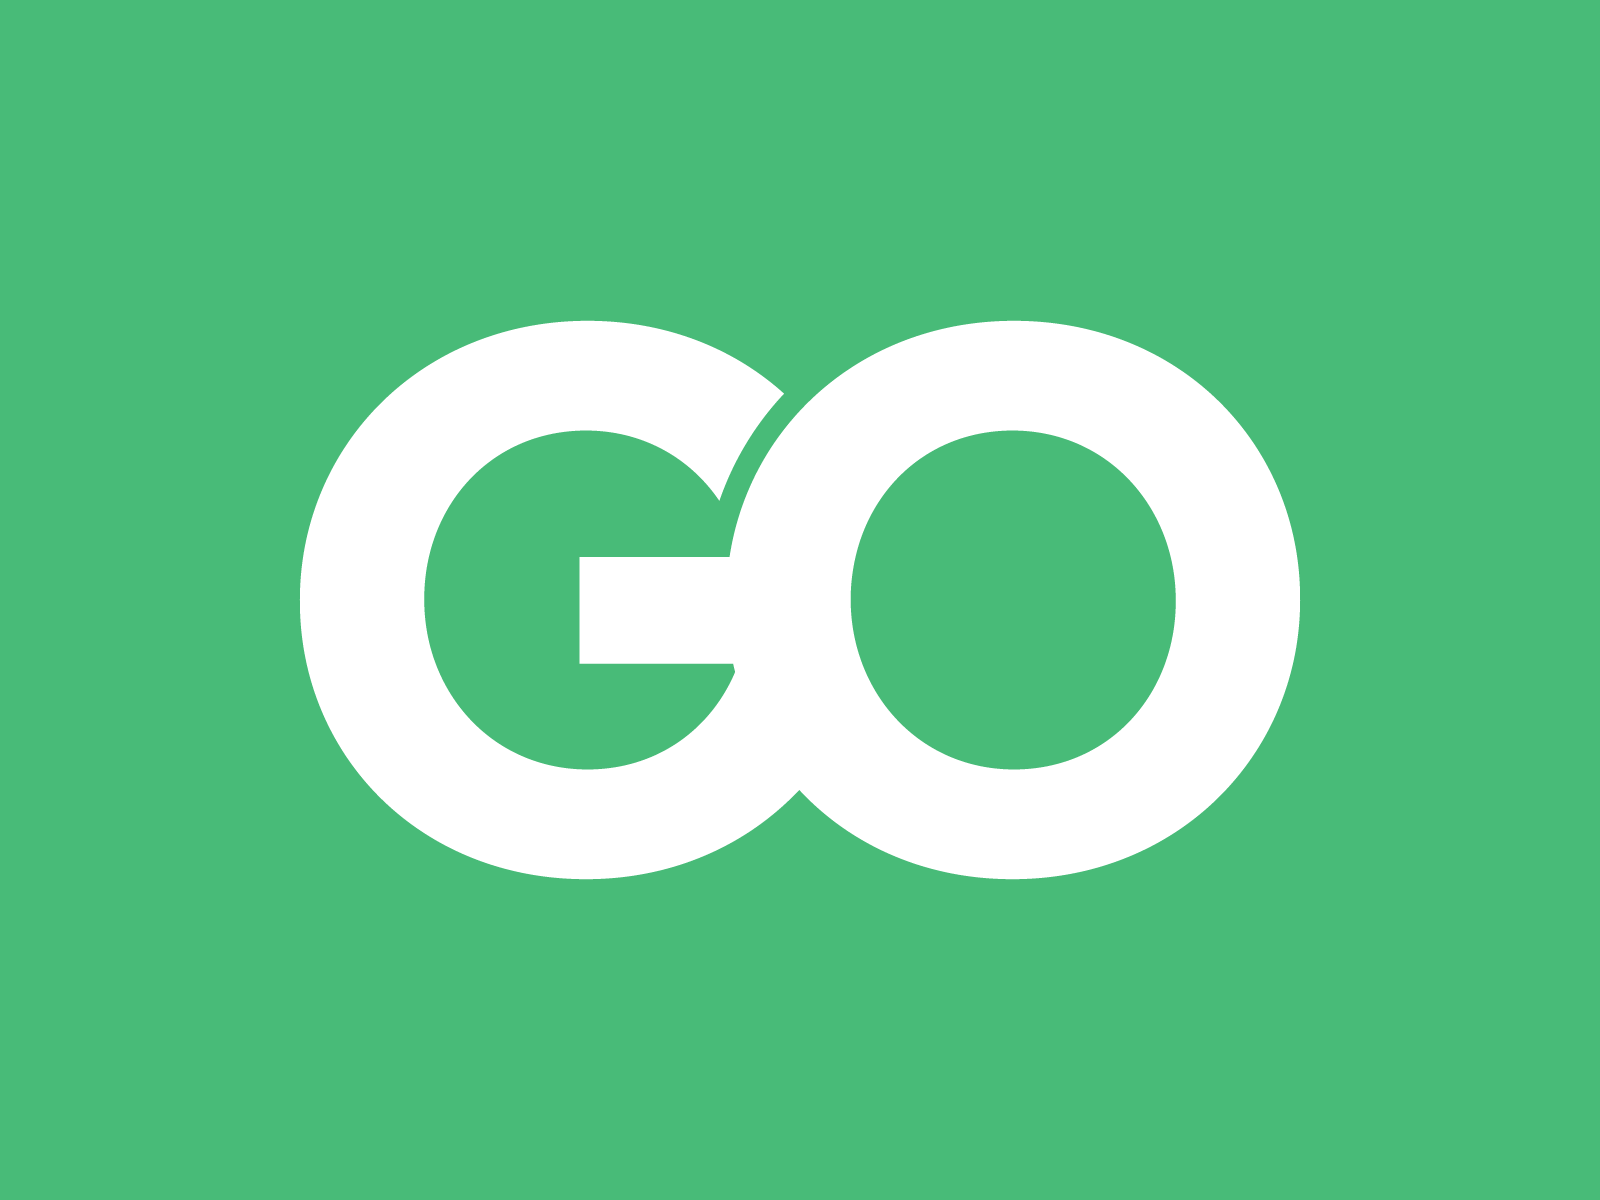 project-go-logo-1.png